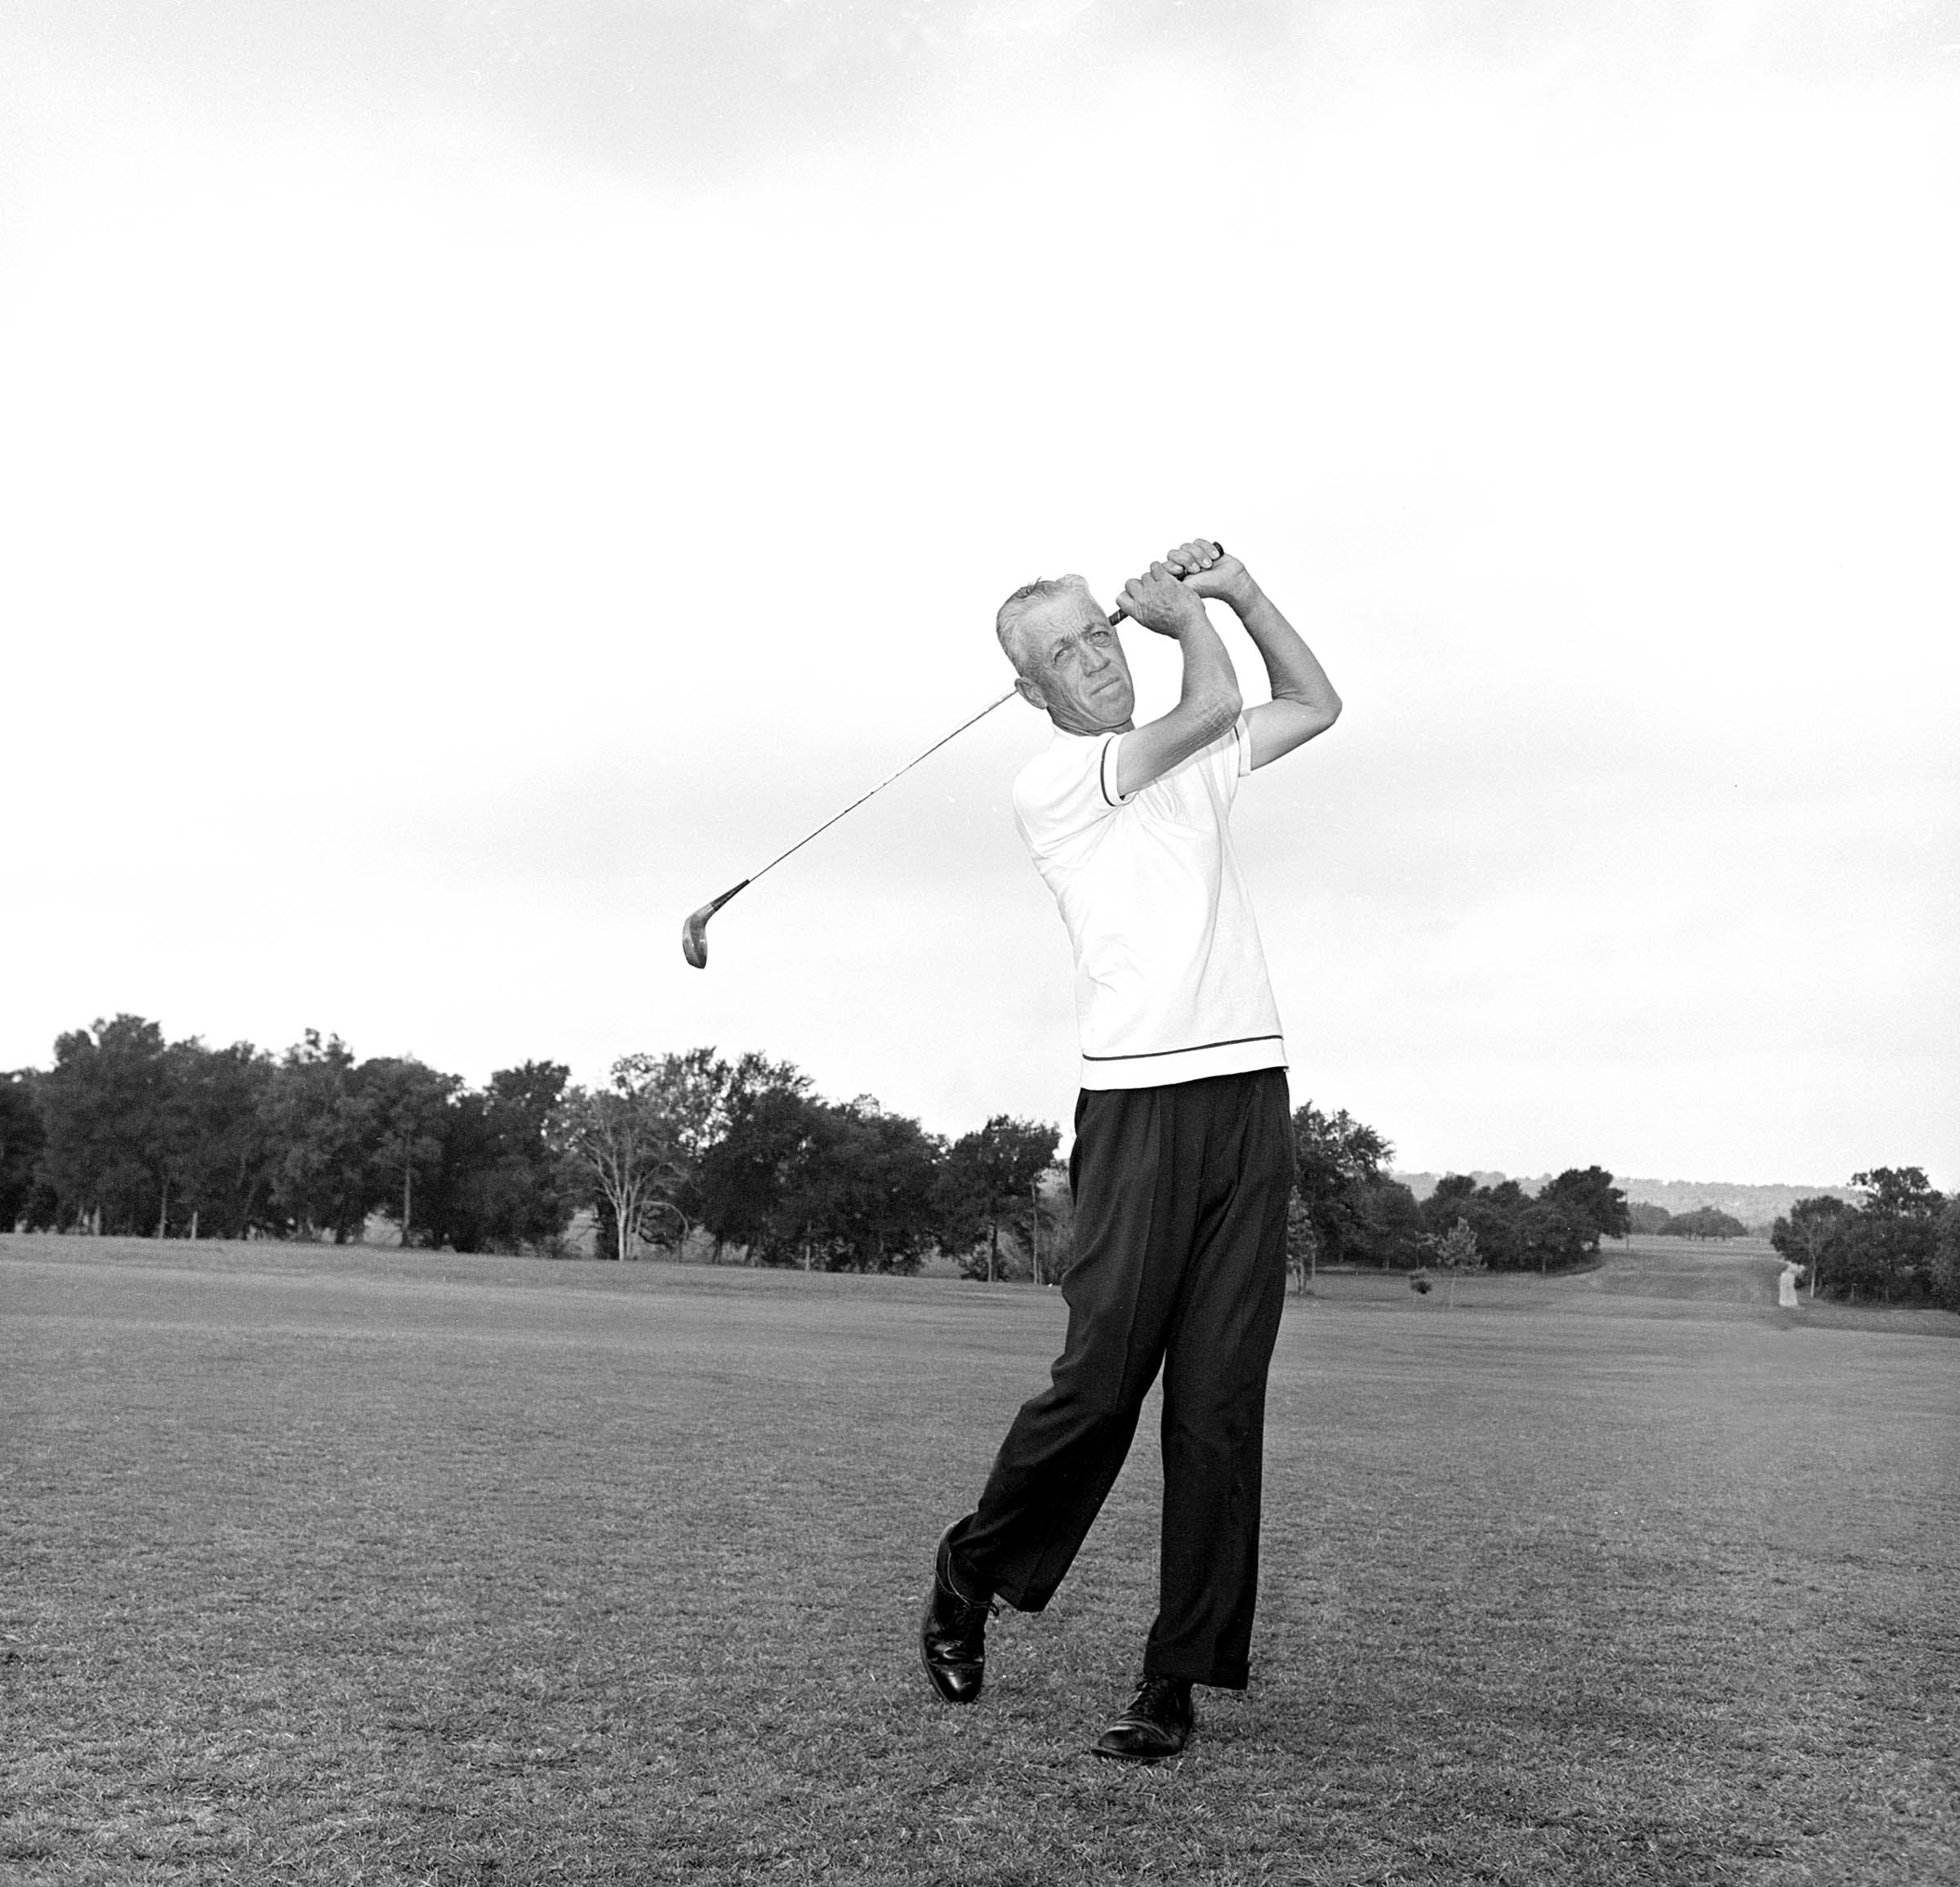 Pro golfer Harvey Penick shown during a posed swing at the Austin, Texas Country Club, May 2, 1964.